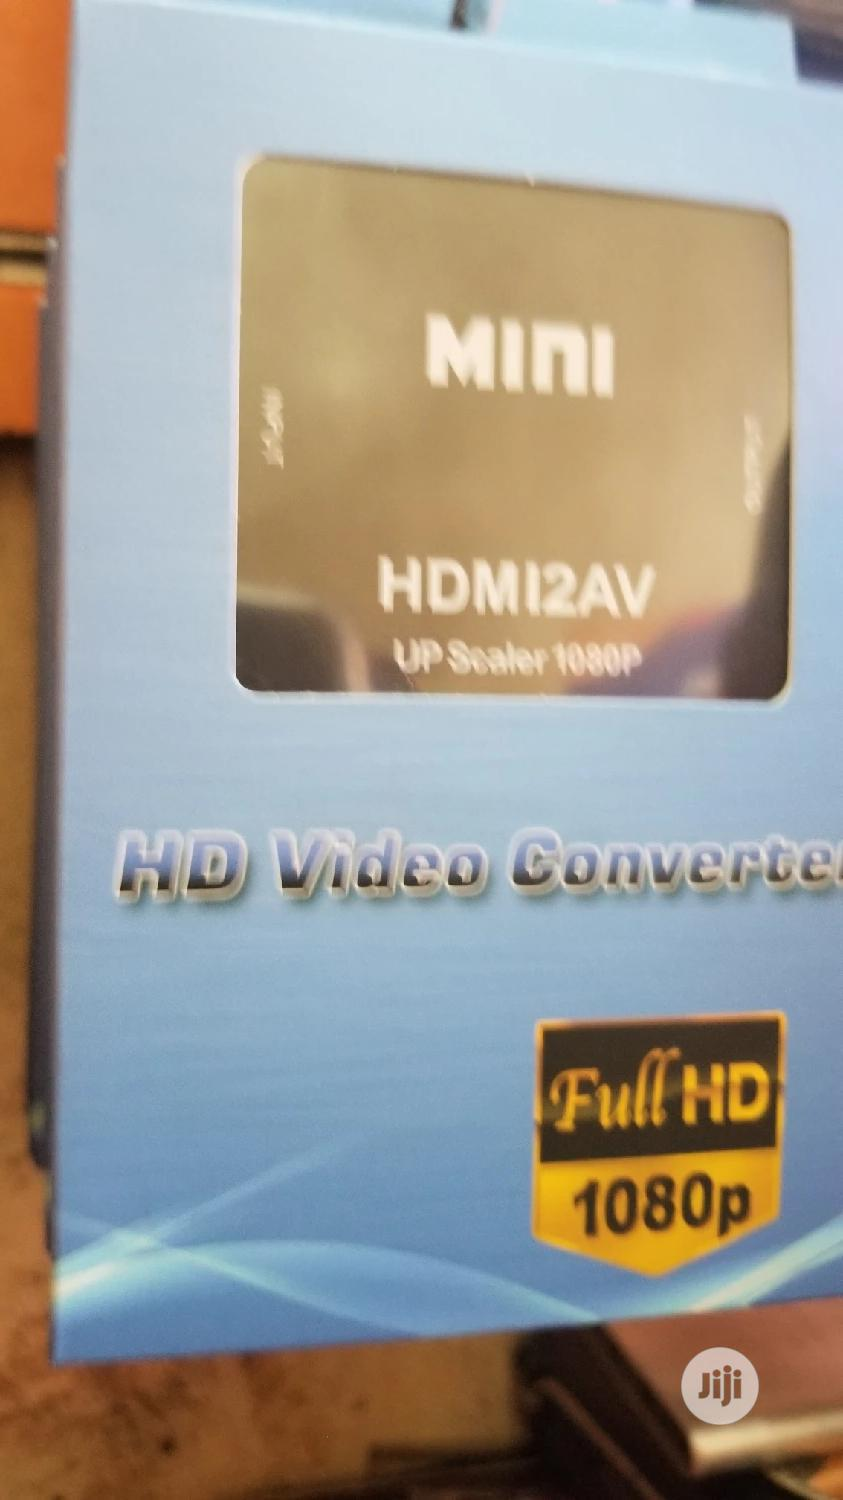 Hdmi Video Capture 2 Av | Accessories & Supplies for Electronics for sale in Ikeja, Lagos State, Nigeria